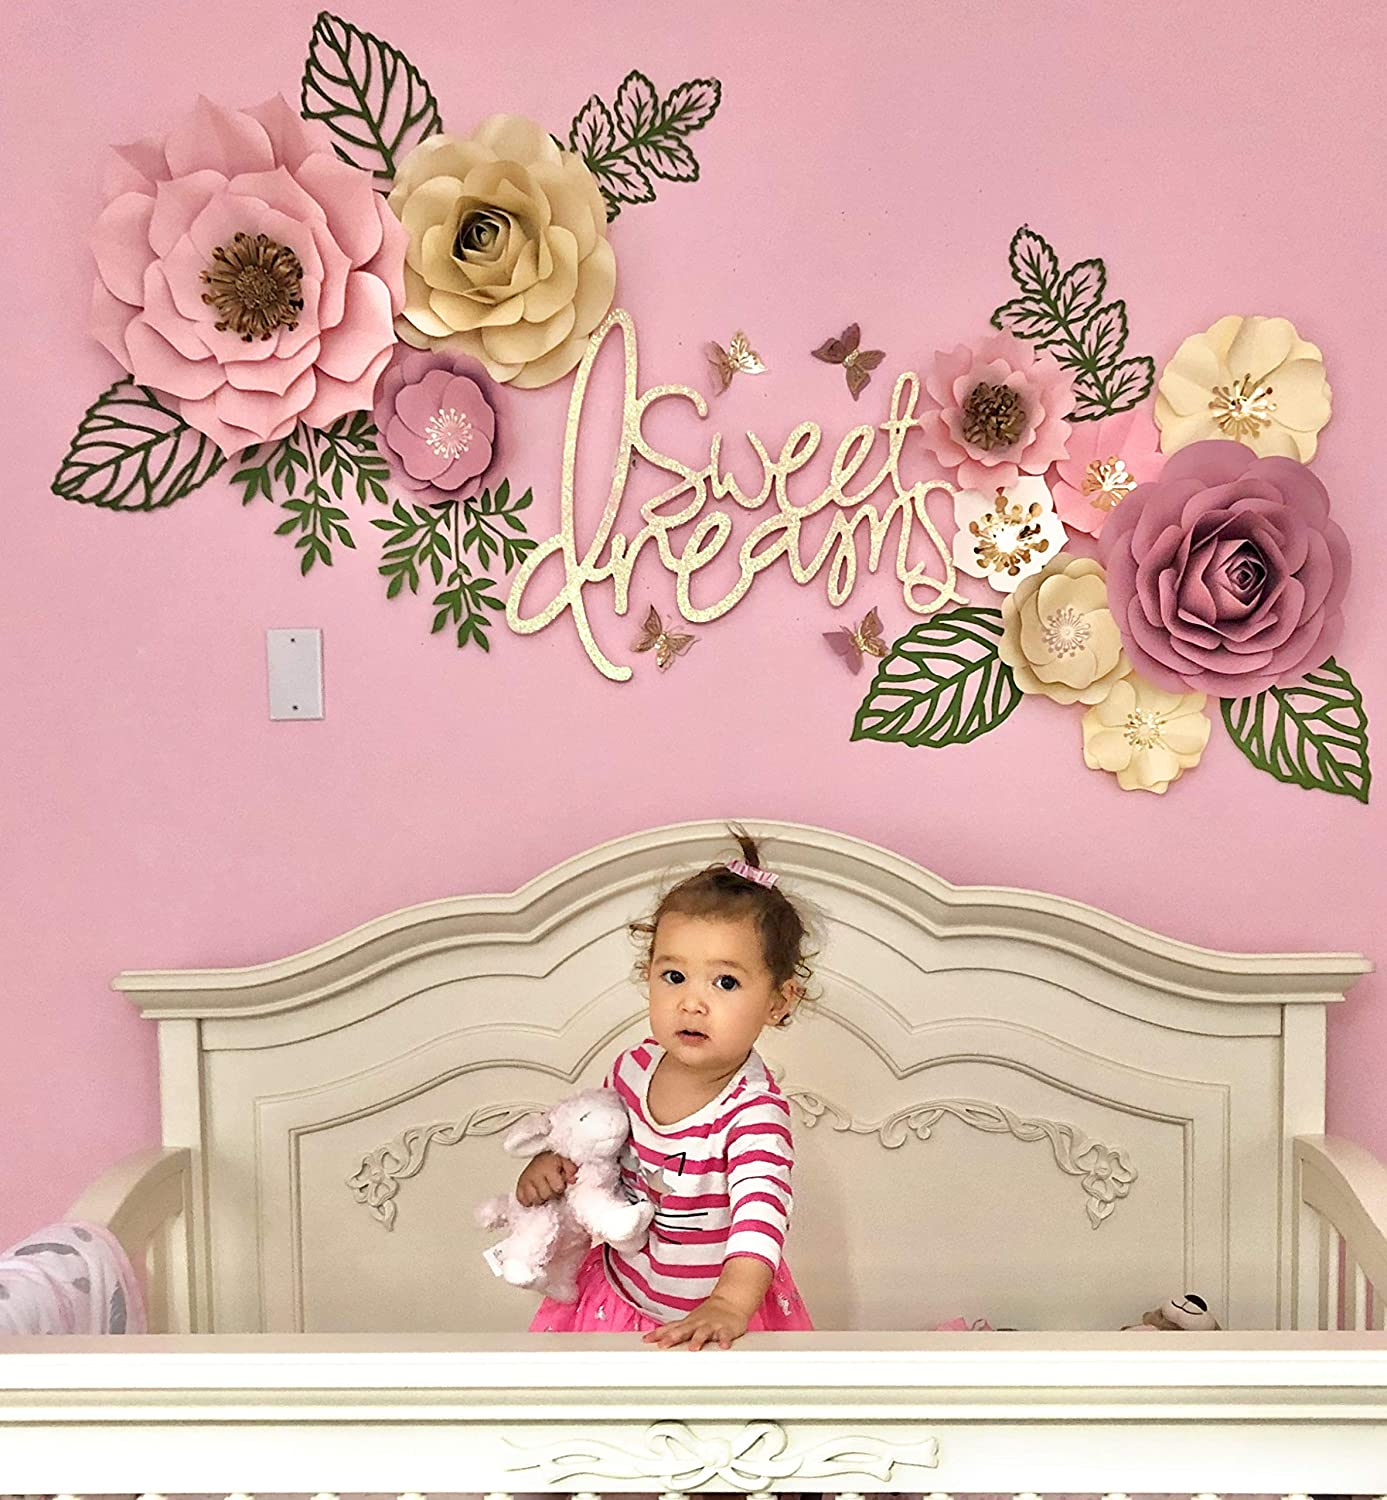 3D Flowers DIY Paper Flowers for Baby Nursery Wall Decorations set of 8